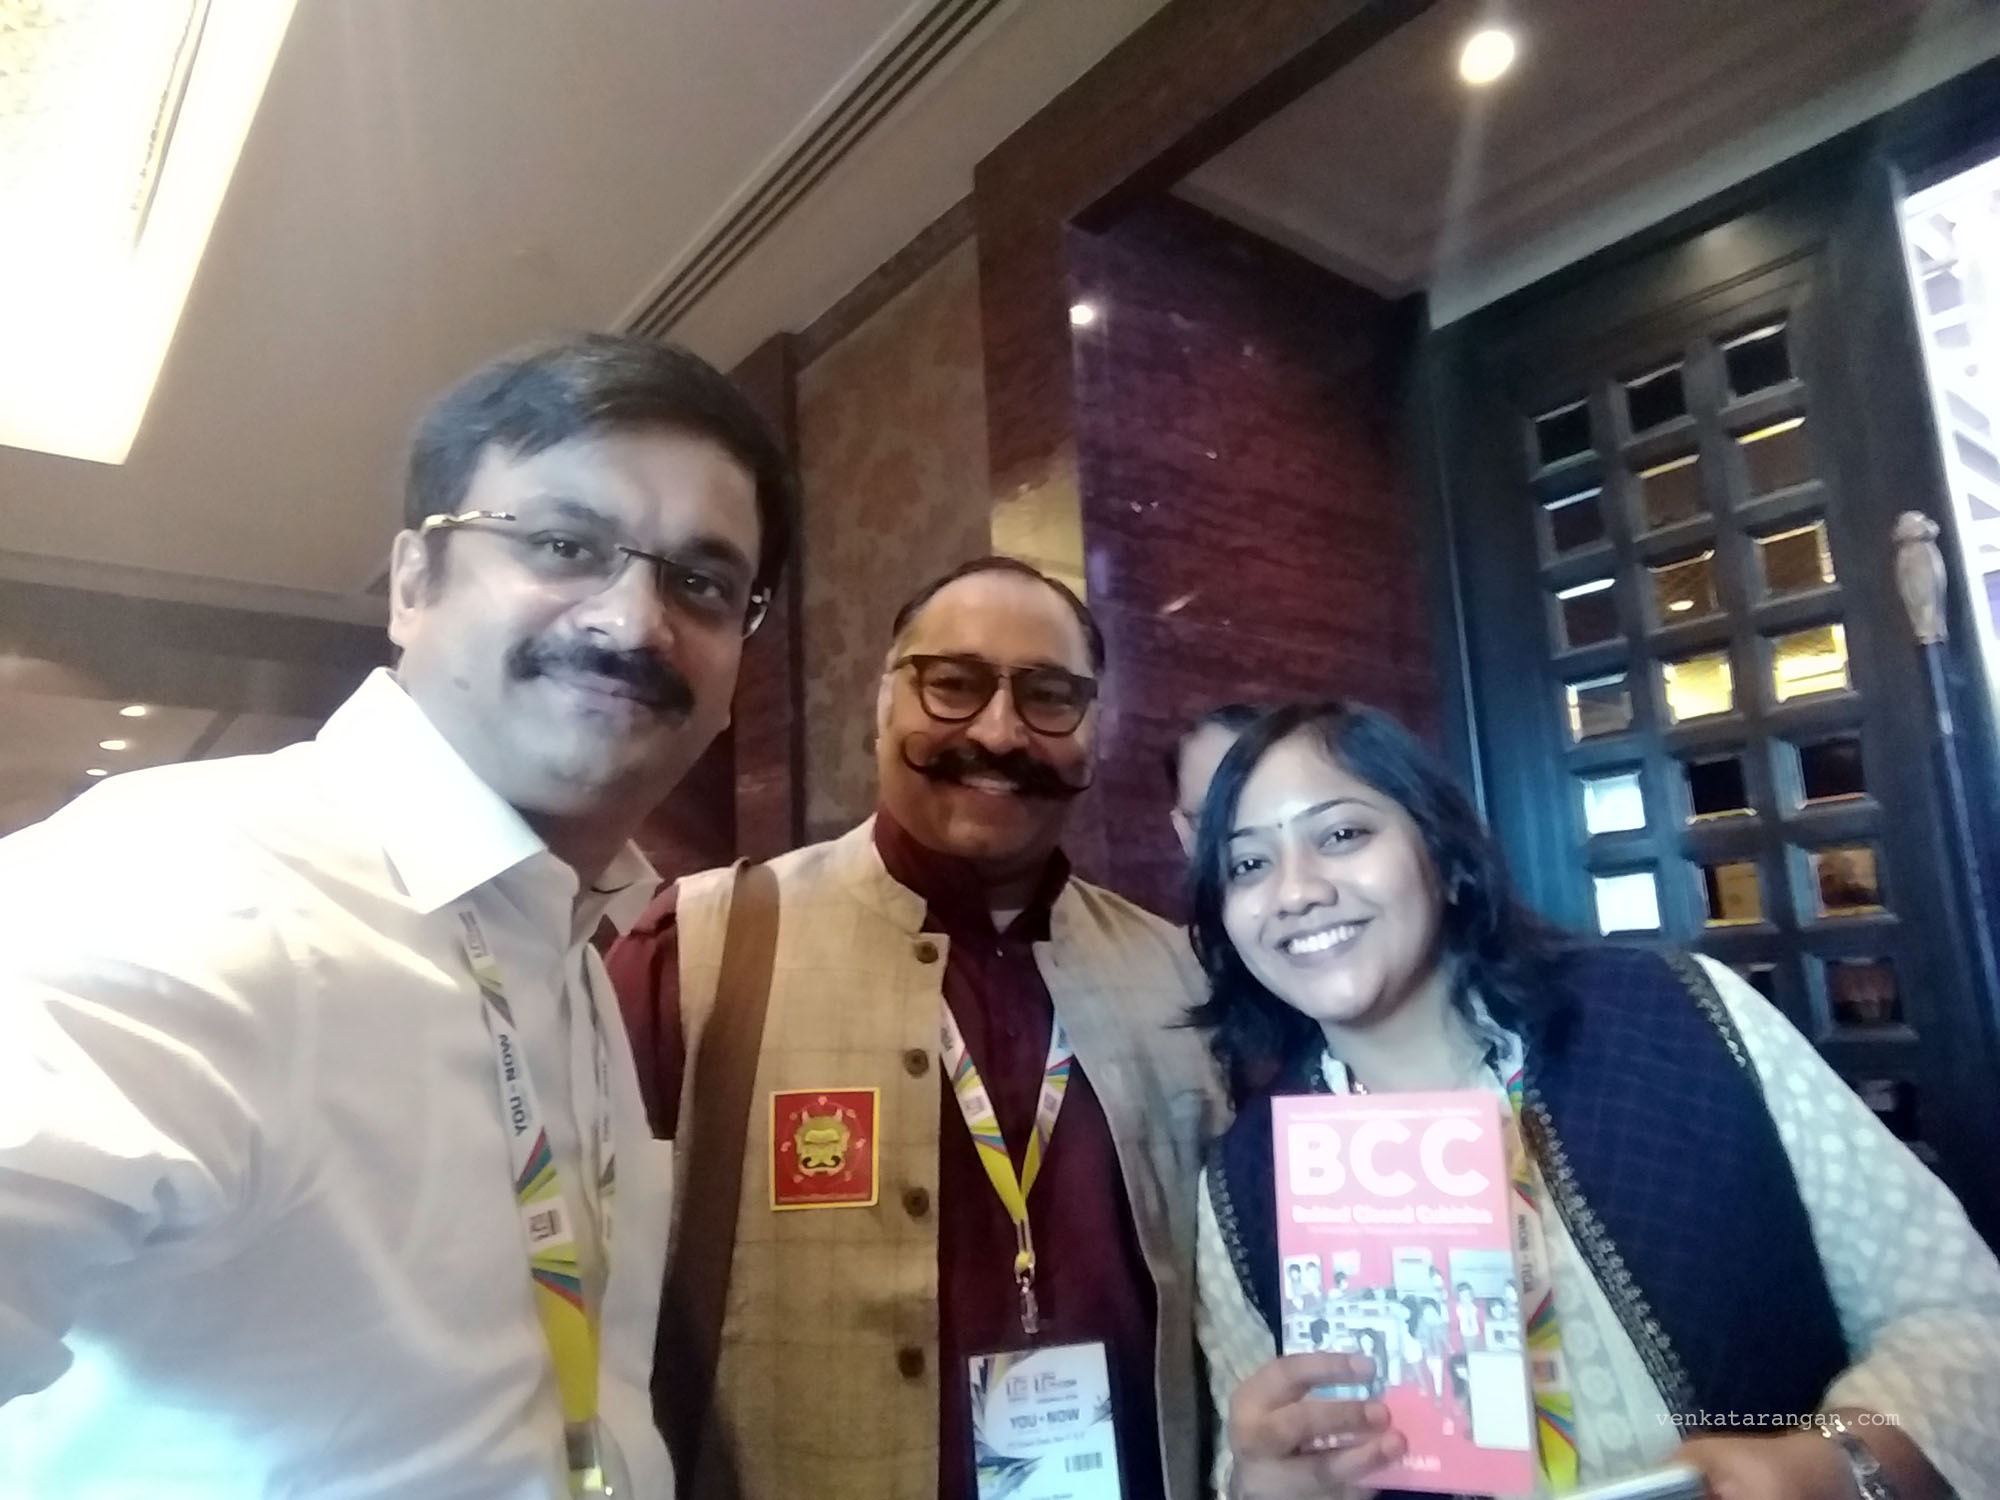 (From left - Venkatarangan, Pravin Sekar & Viji Hari - Author of BCC)